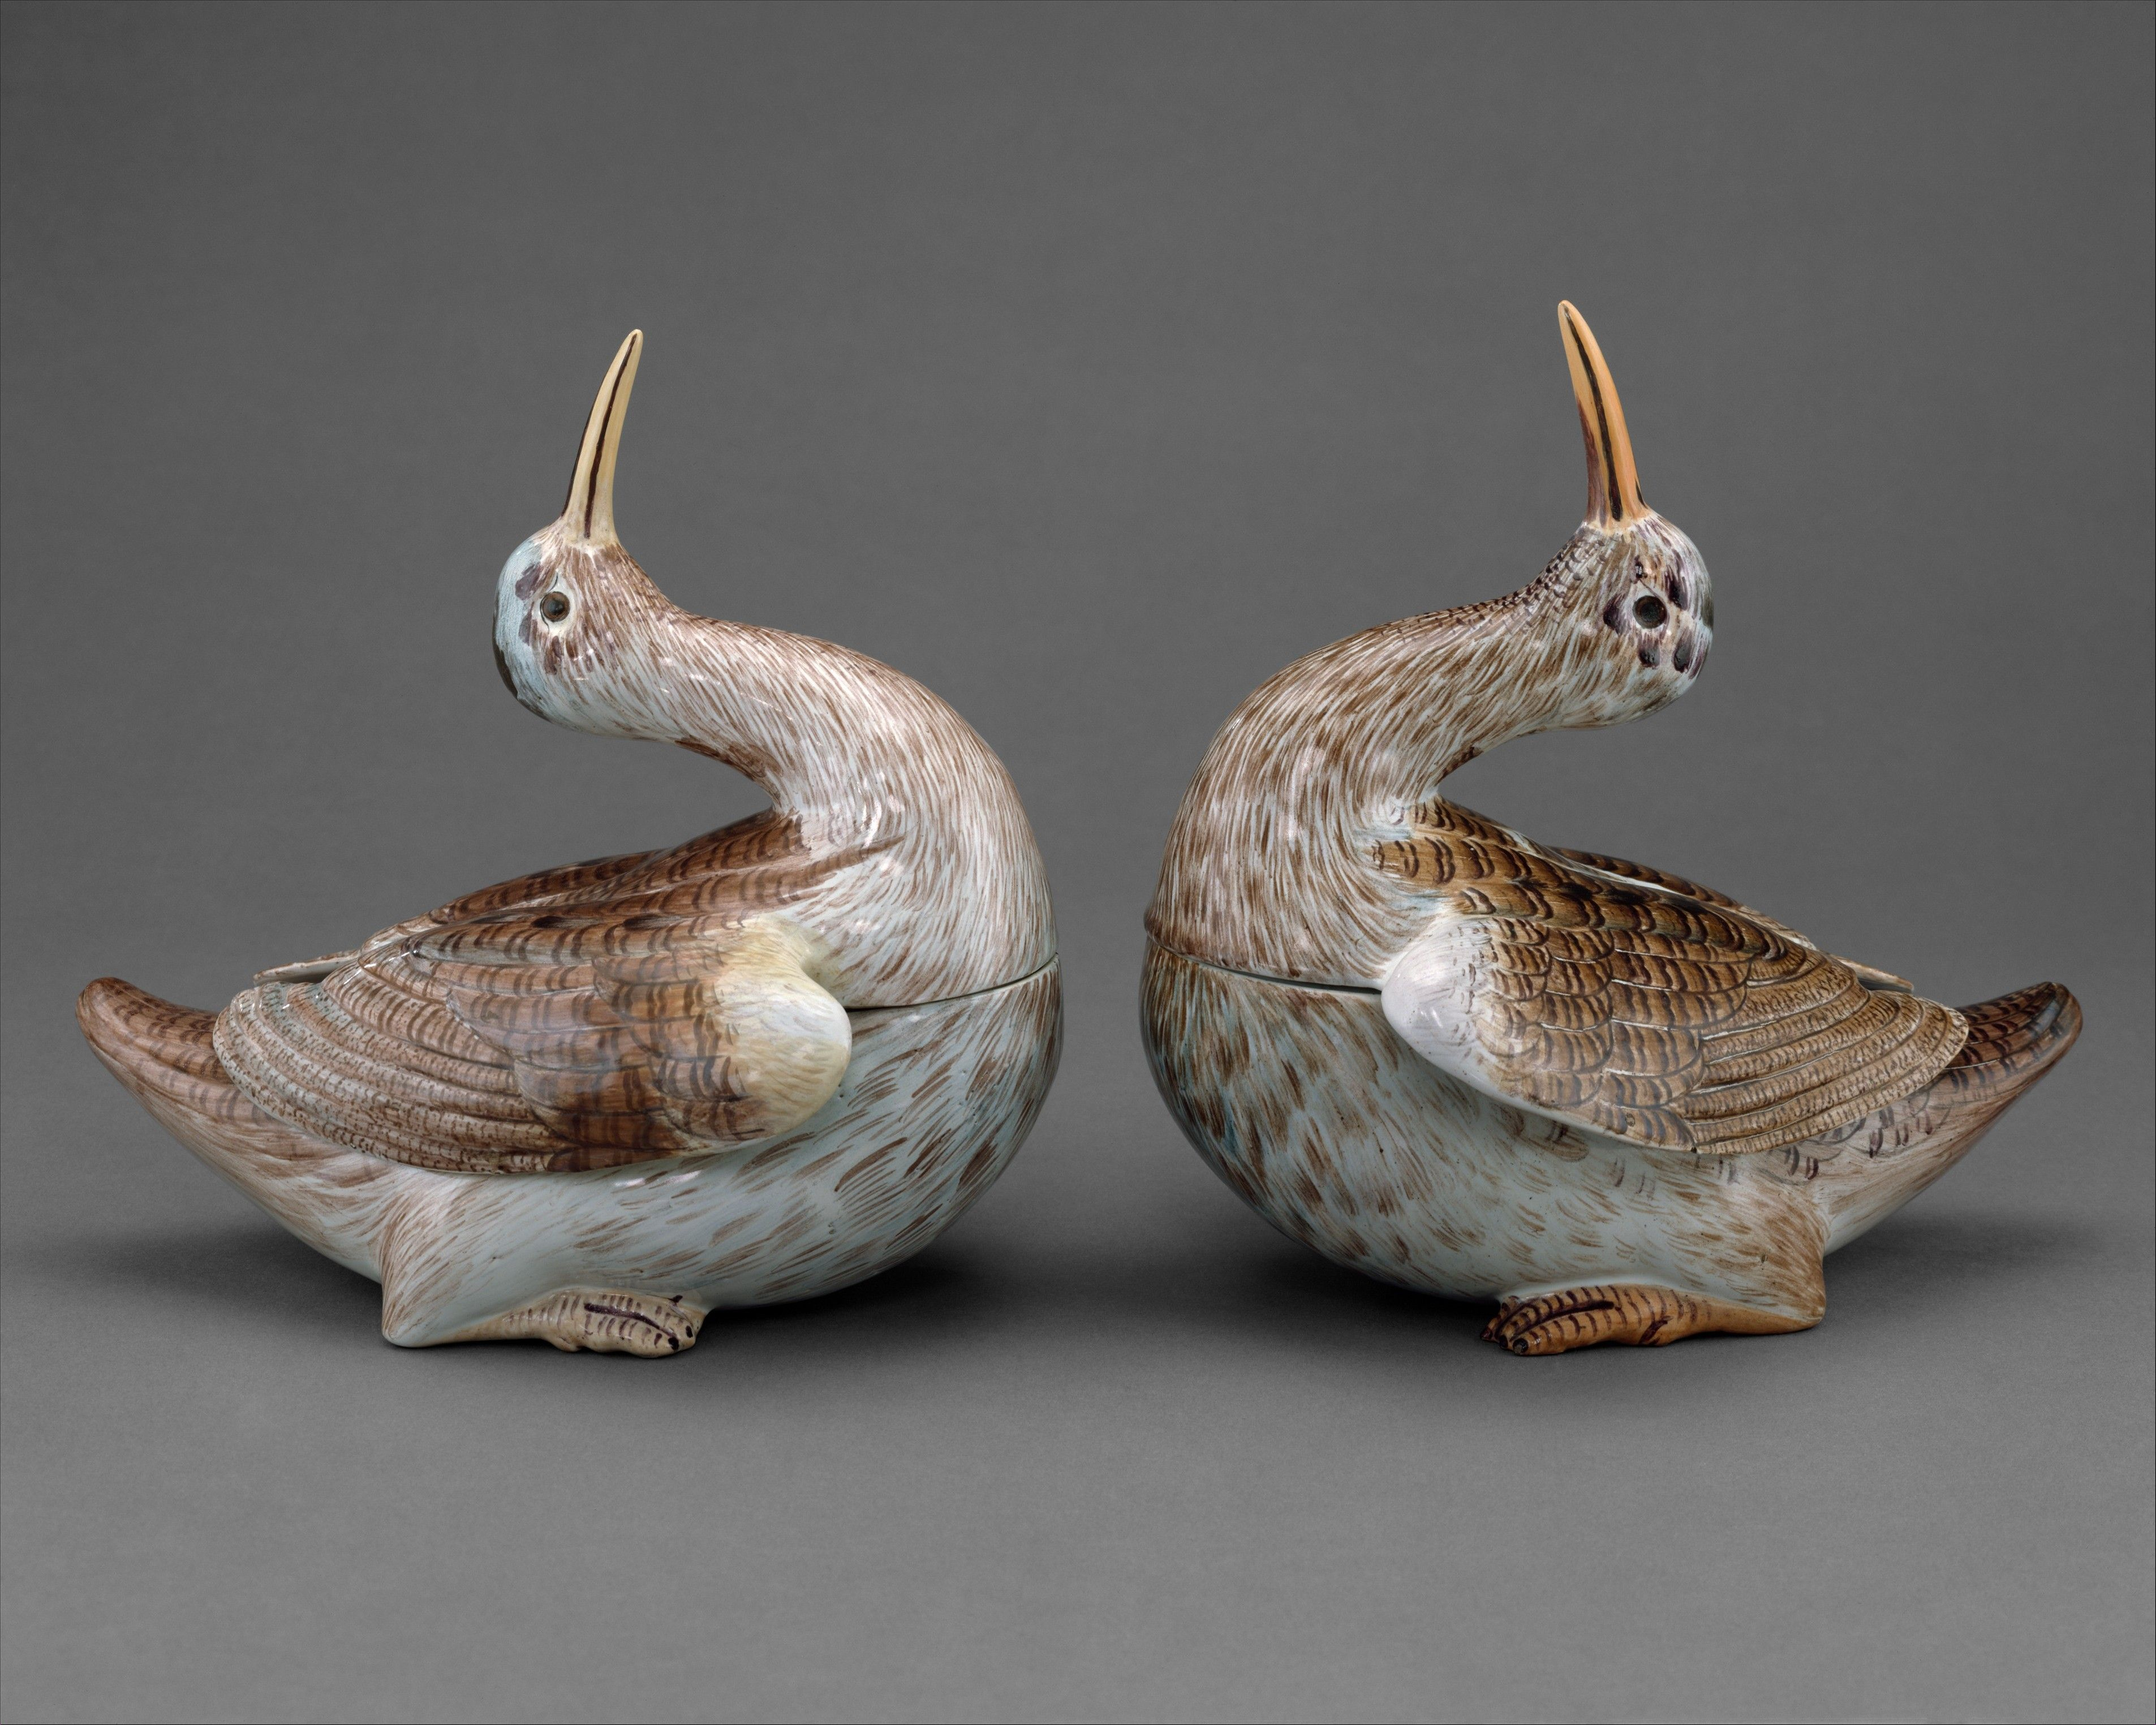 Two tureens in the shape of woodcocks